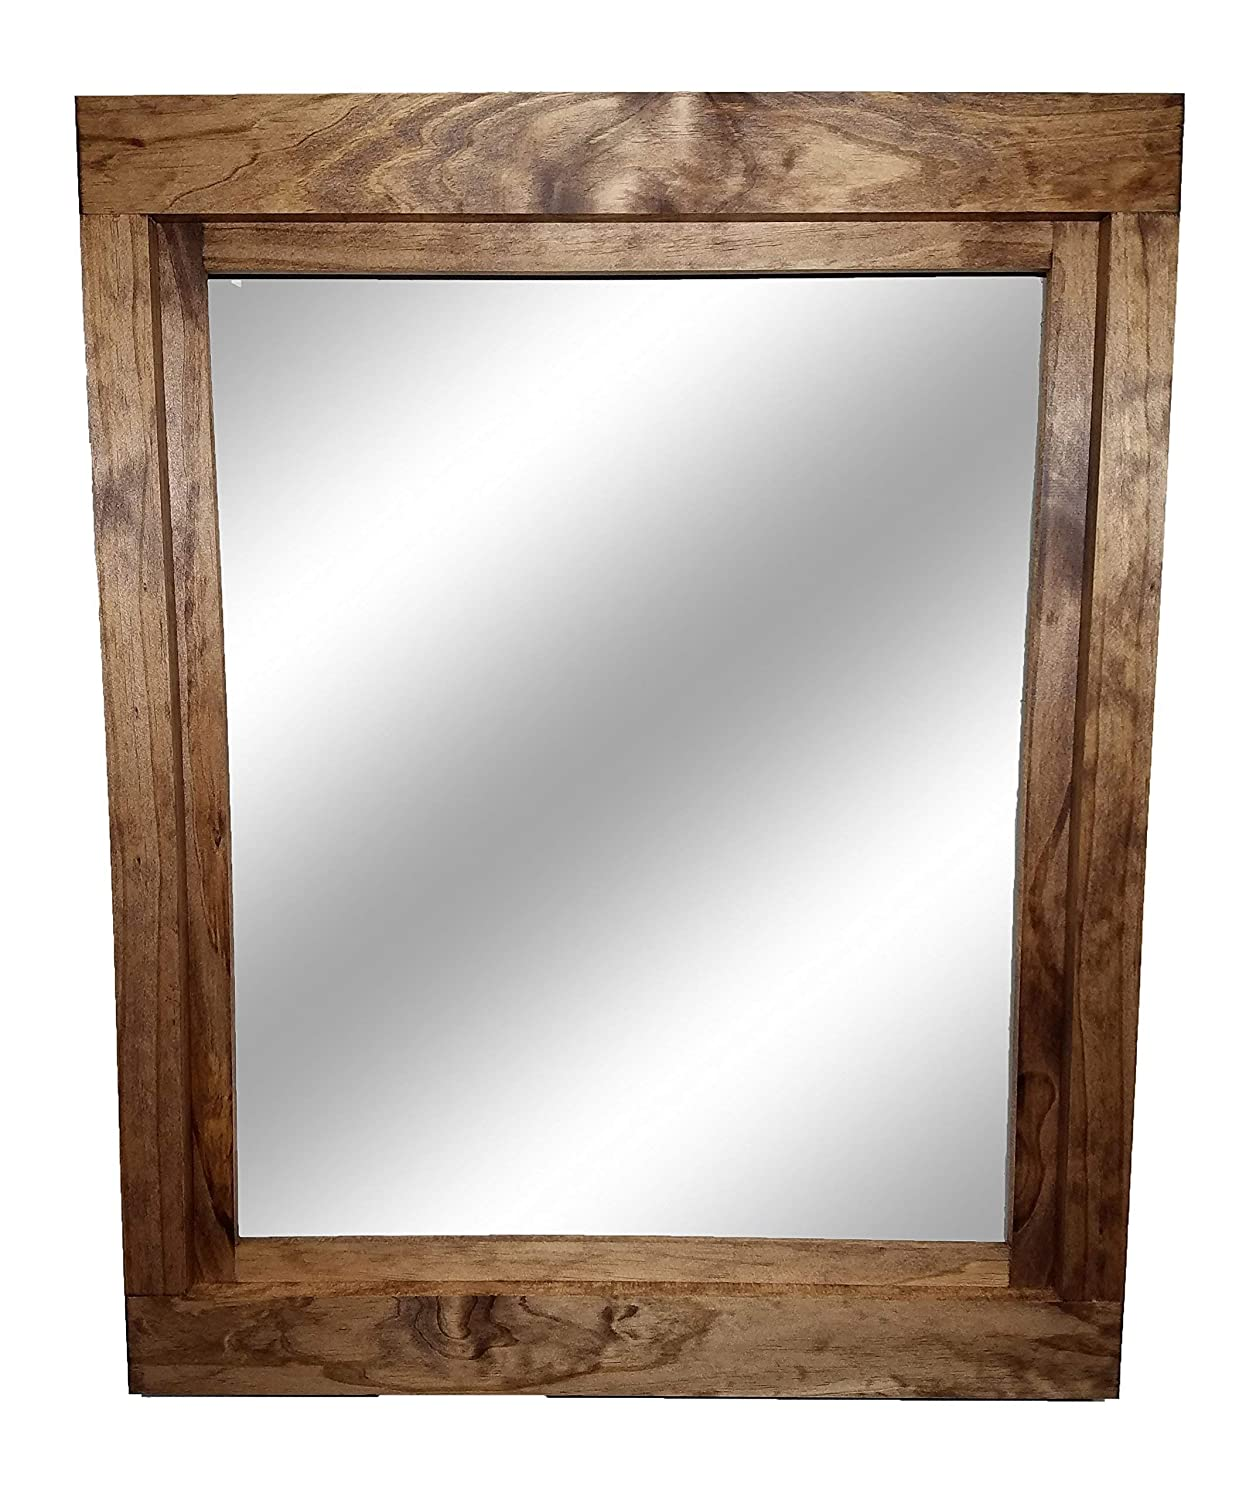 Farmhouse Large Framed Mirror Available in Four Sizes and 20 Colors: Shown in Early American - Large Wall Mirror - Bathroom Mirror - Rustic Wall Decor